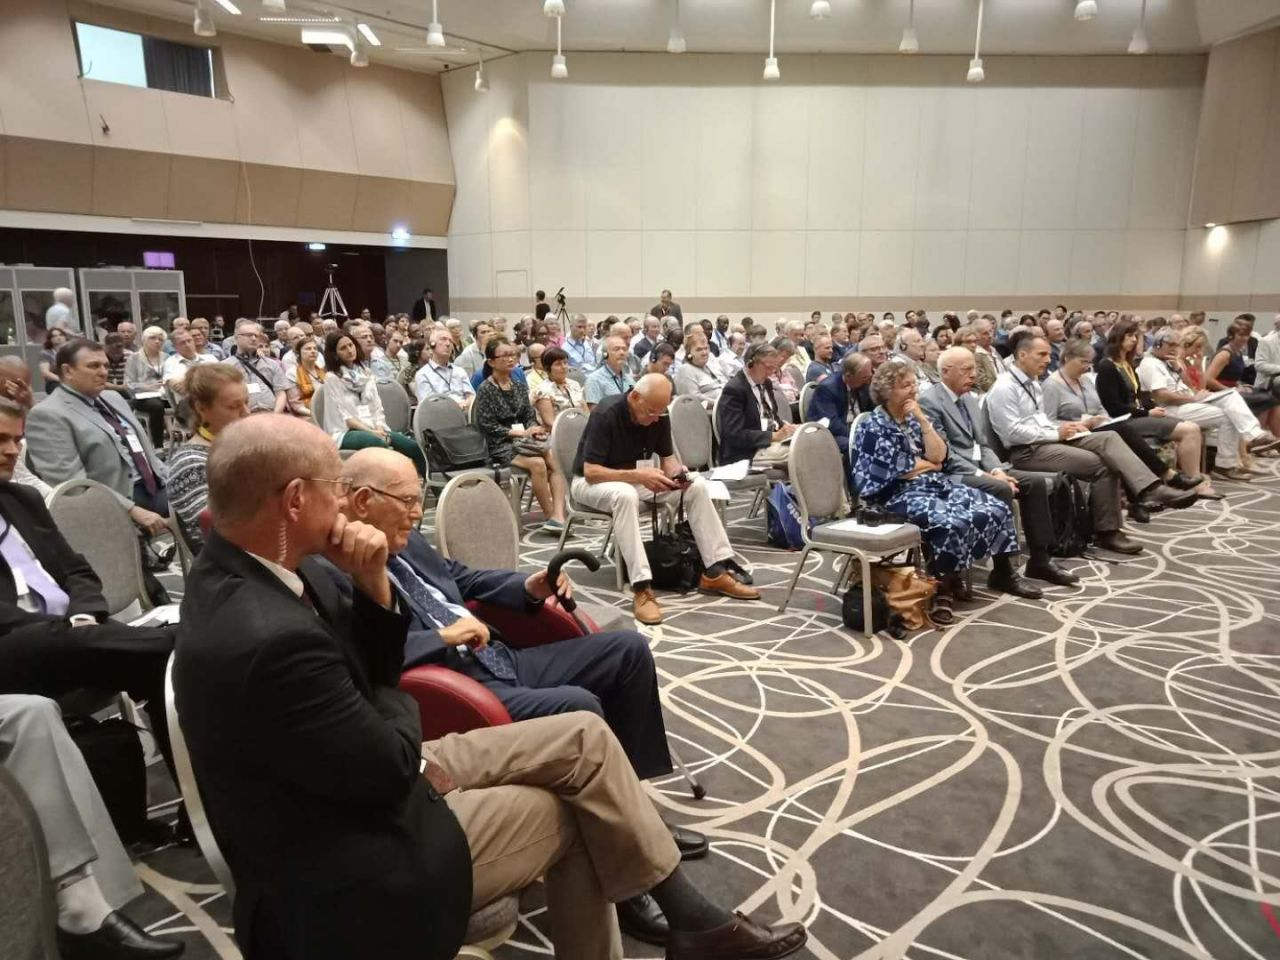 Approximately 300 people attended the conference on Saturday.